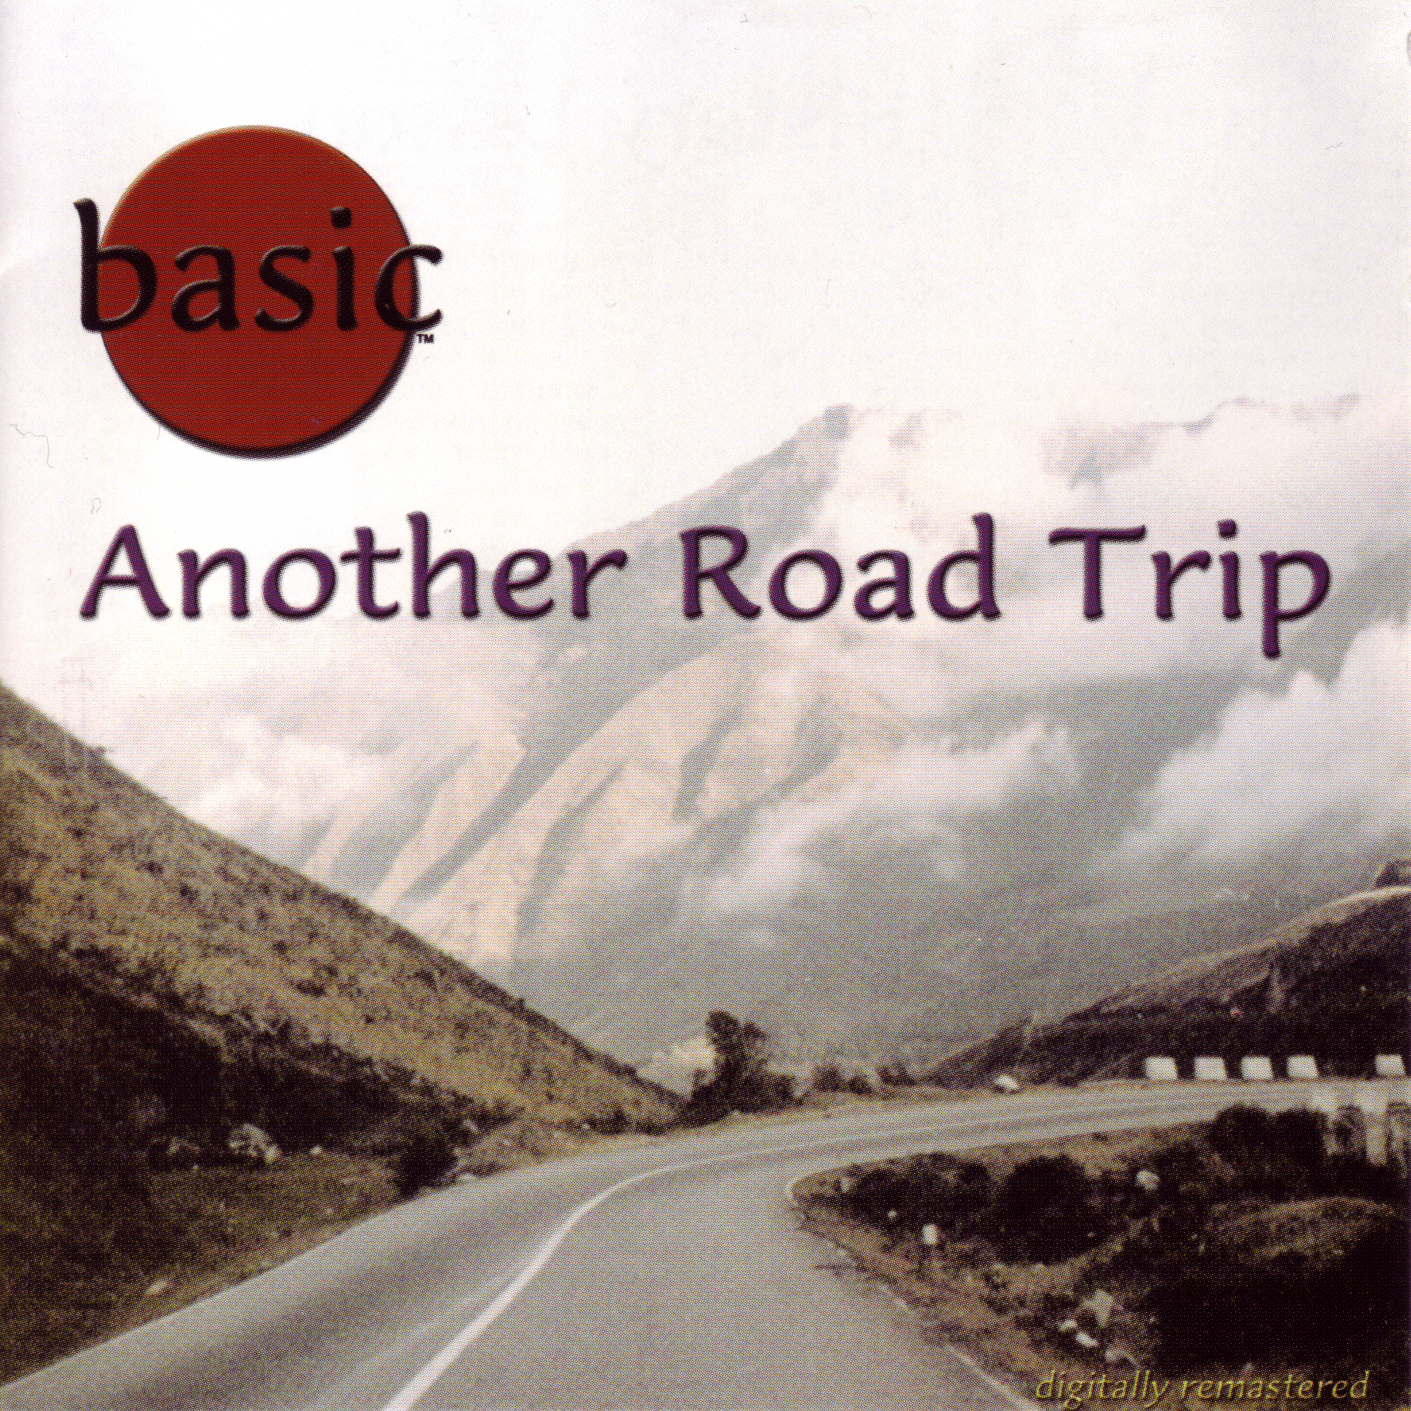 Another Road Trip by basic